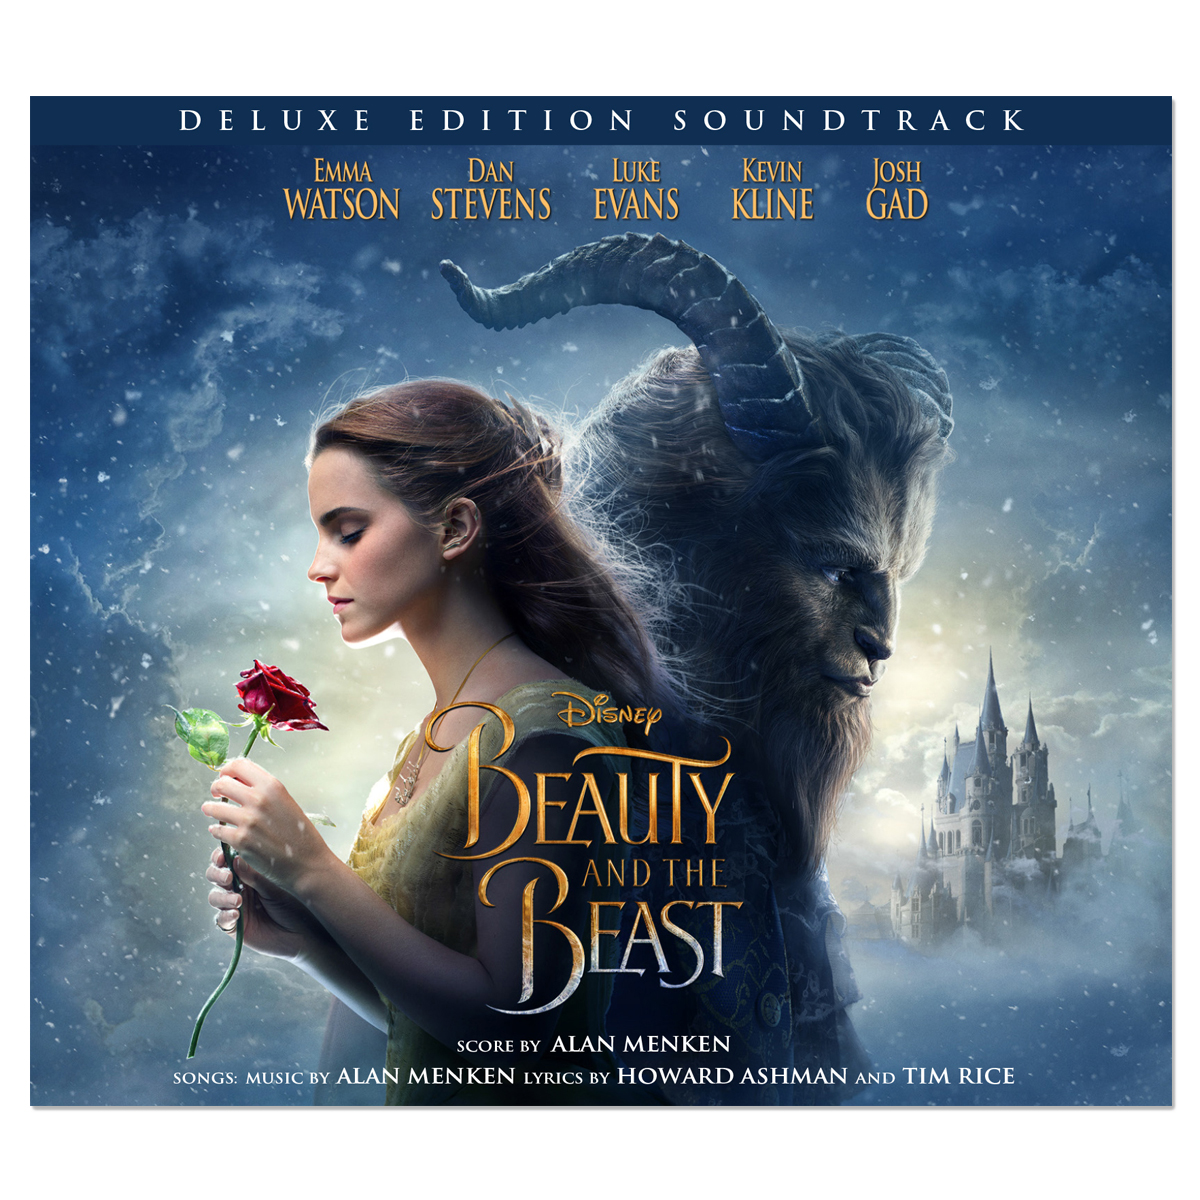 Beauty and the Beast Deluxe Edition Soundtrack | Shop the ...